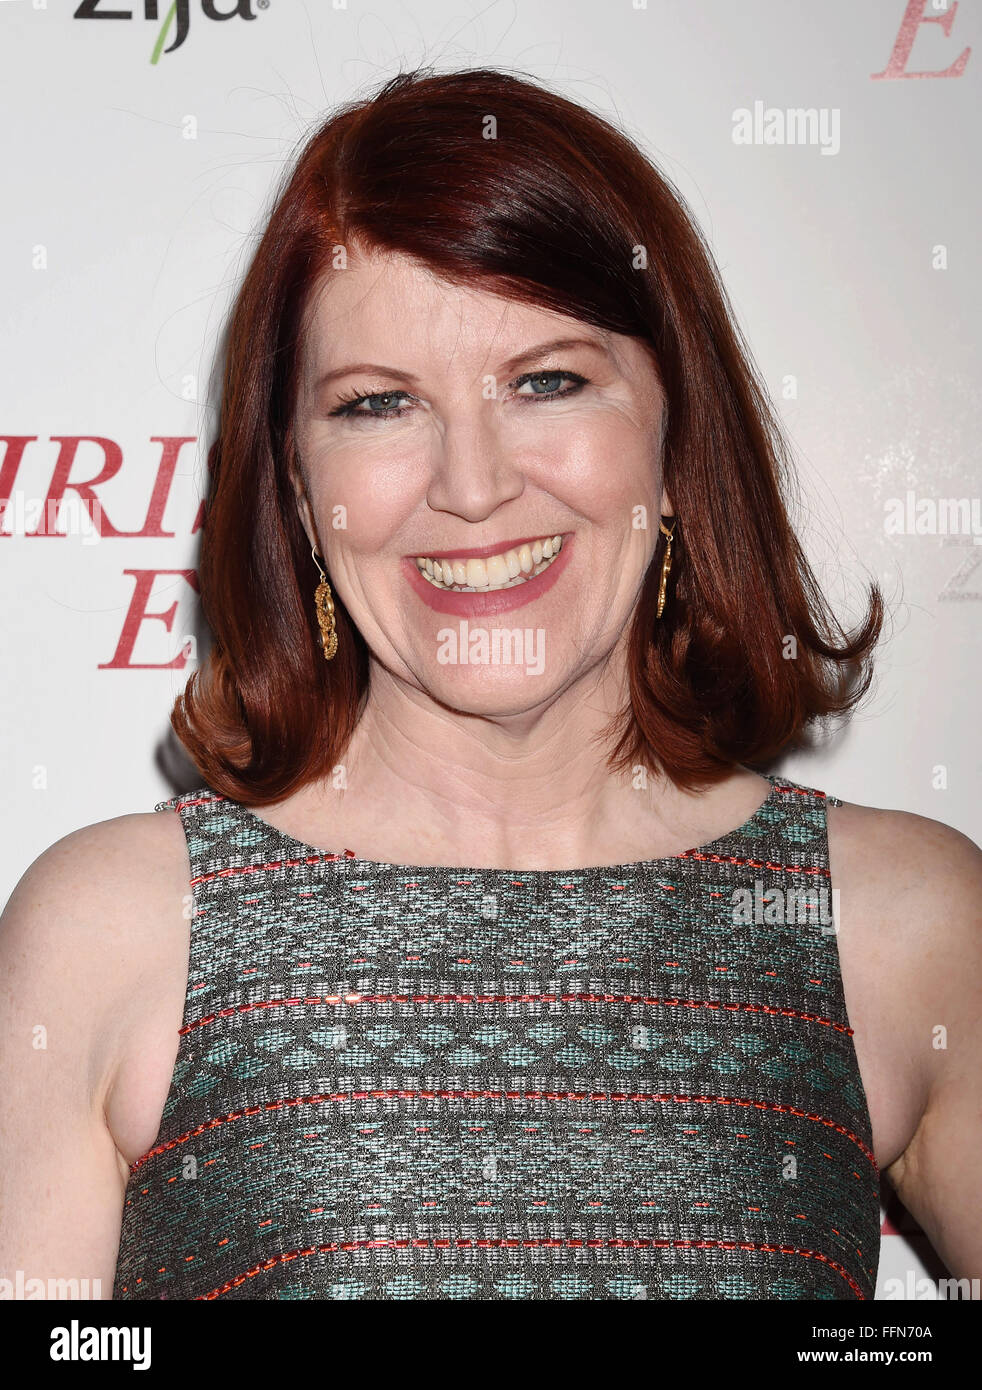 Actress Kate Flannery arrives at the premiere of Unstuck's 'Christmas Eve' at the ArcLight Hollywood - Stock Image